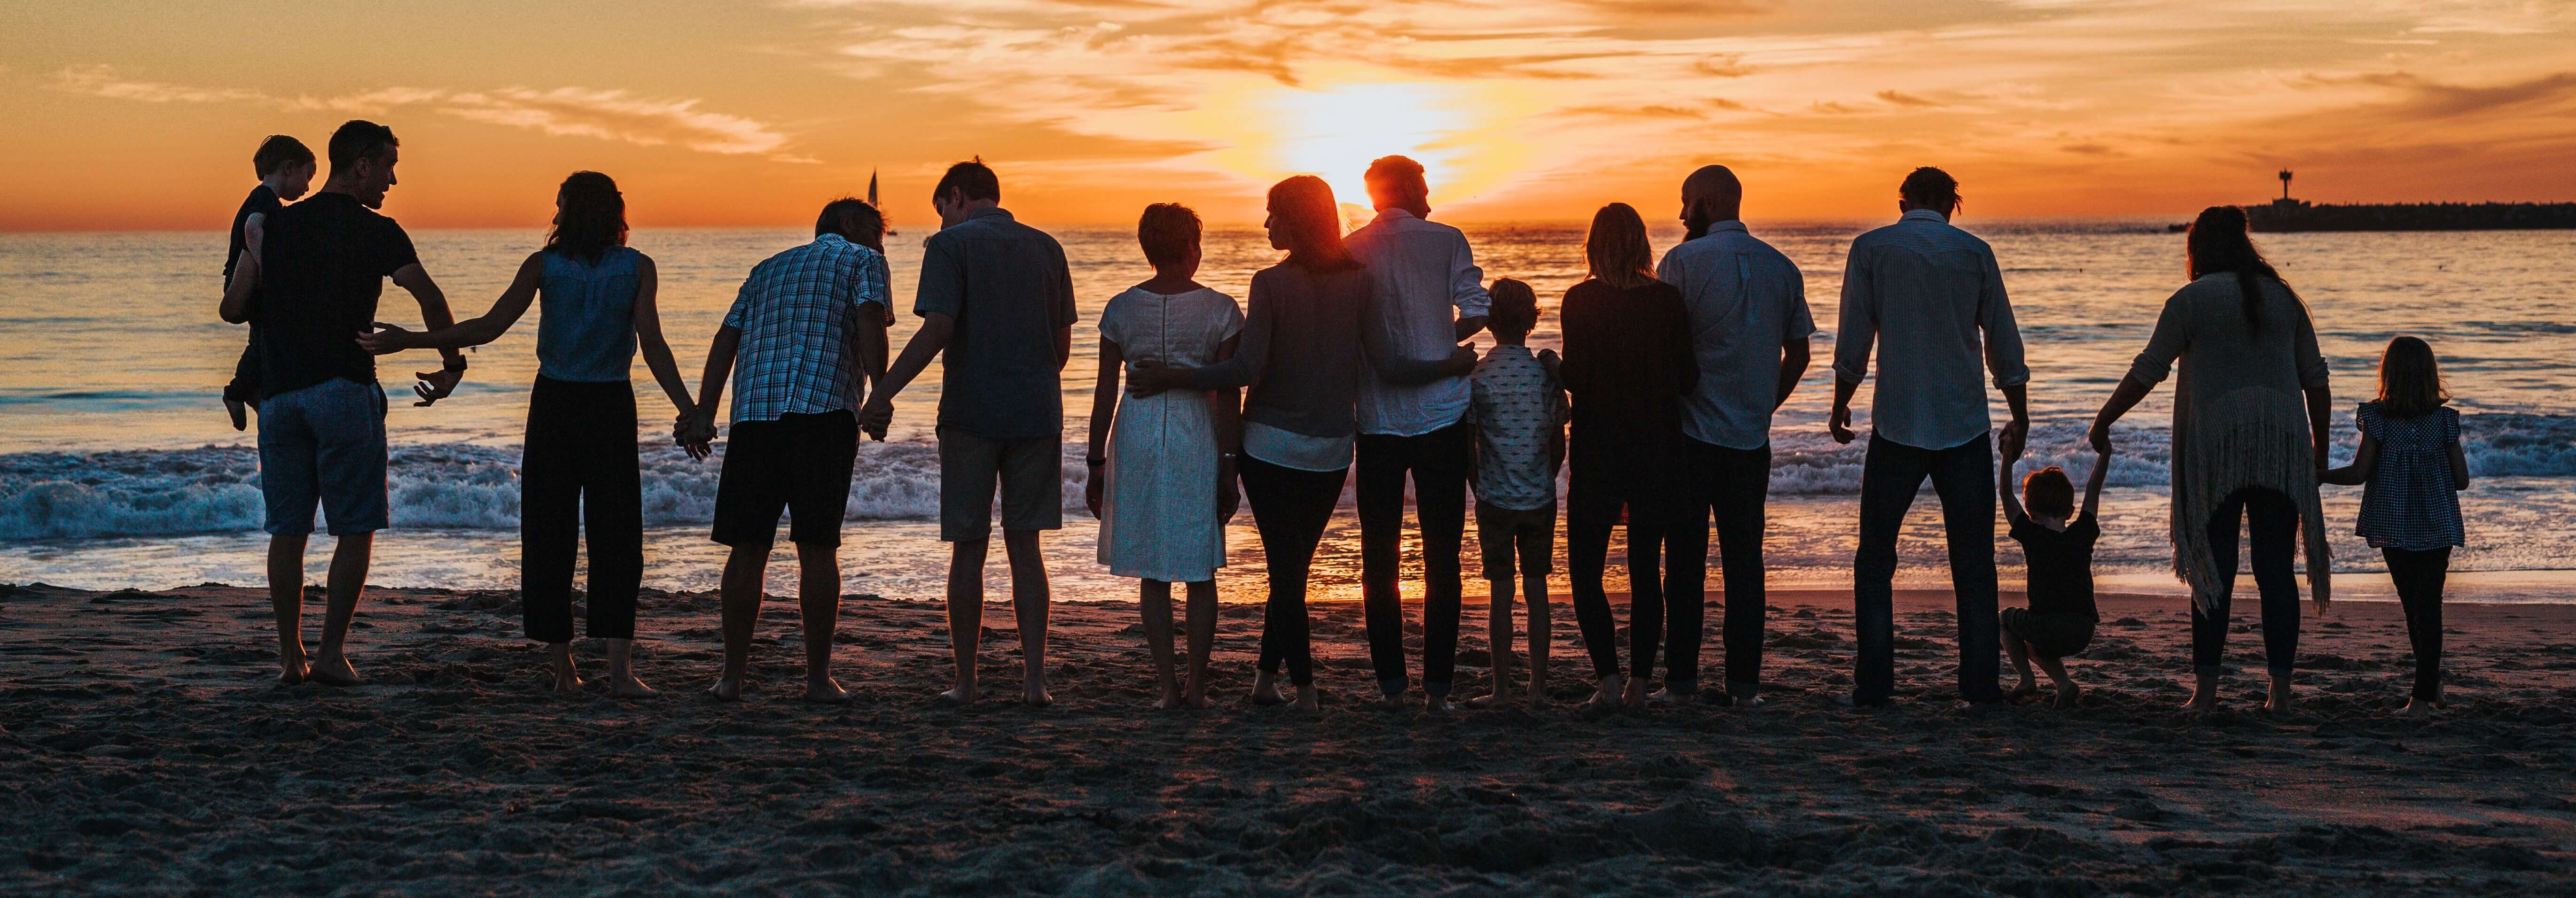 Family sunset cropped sky